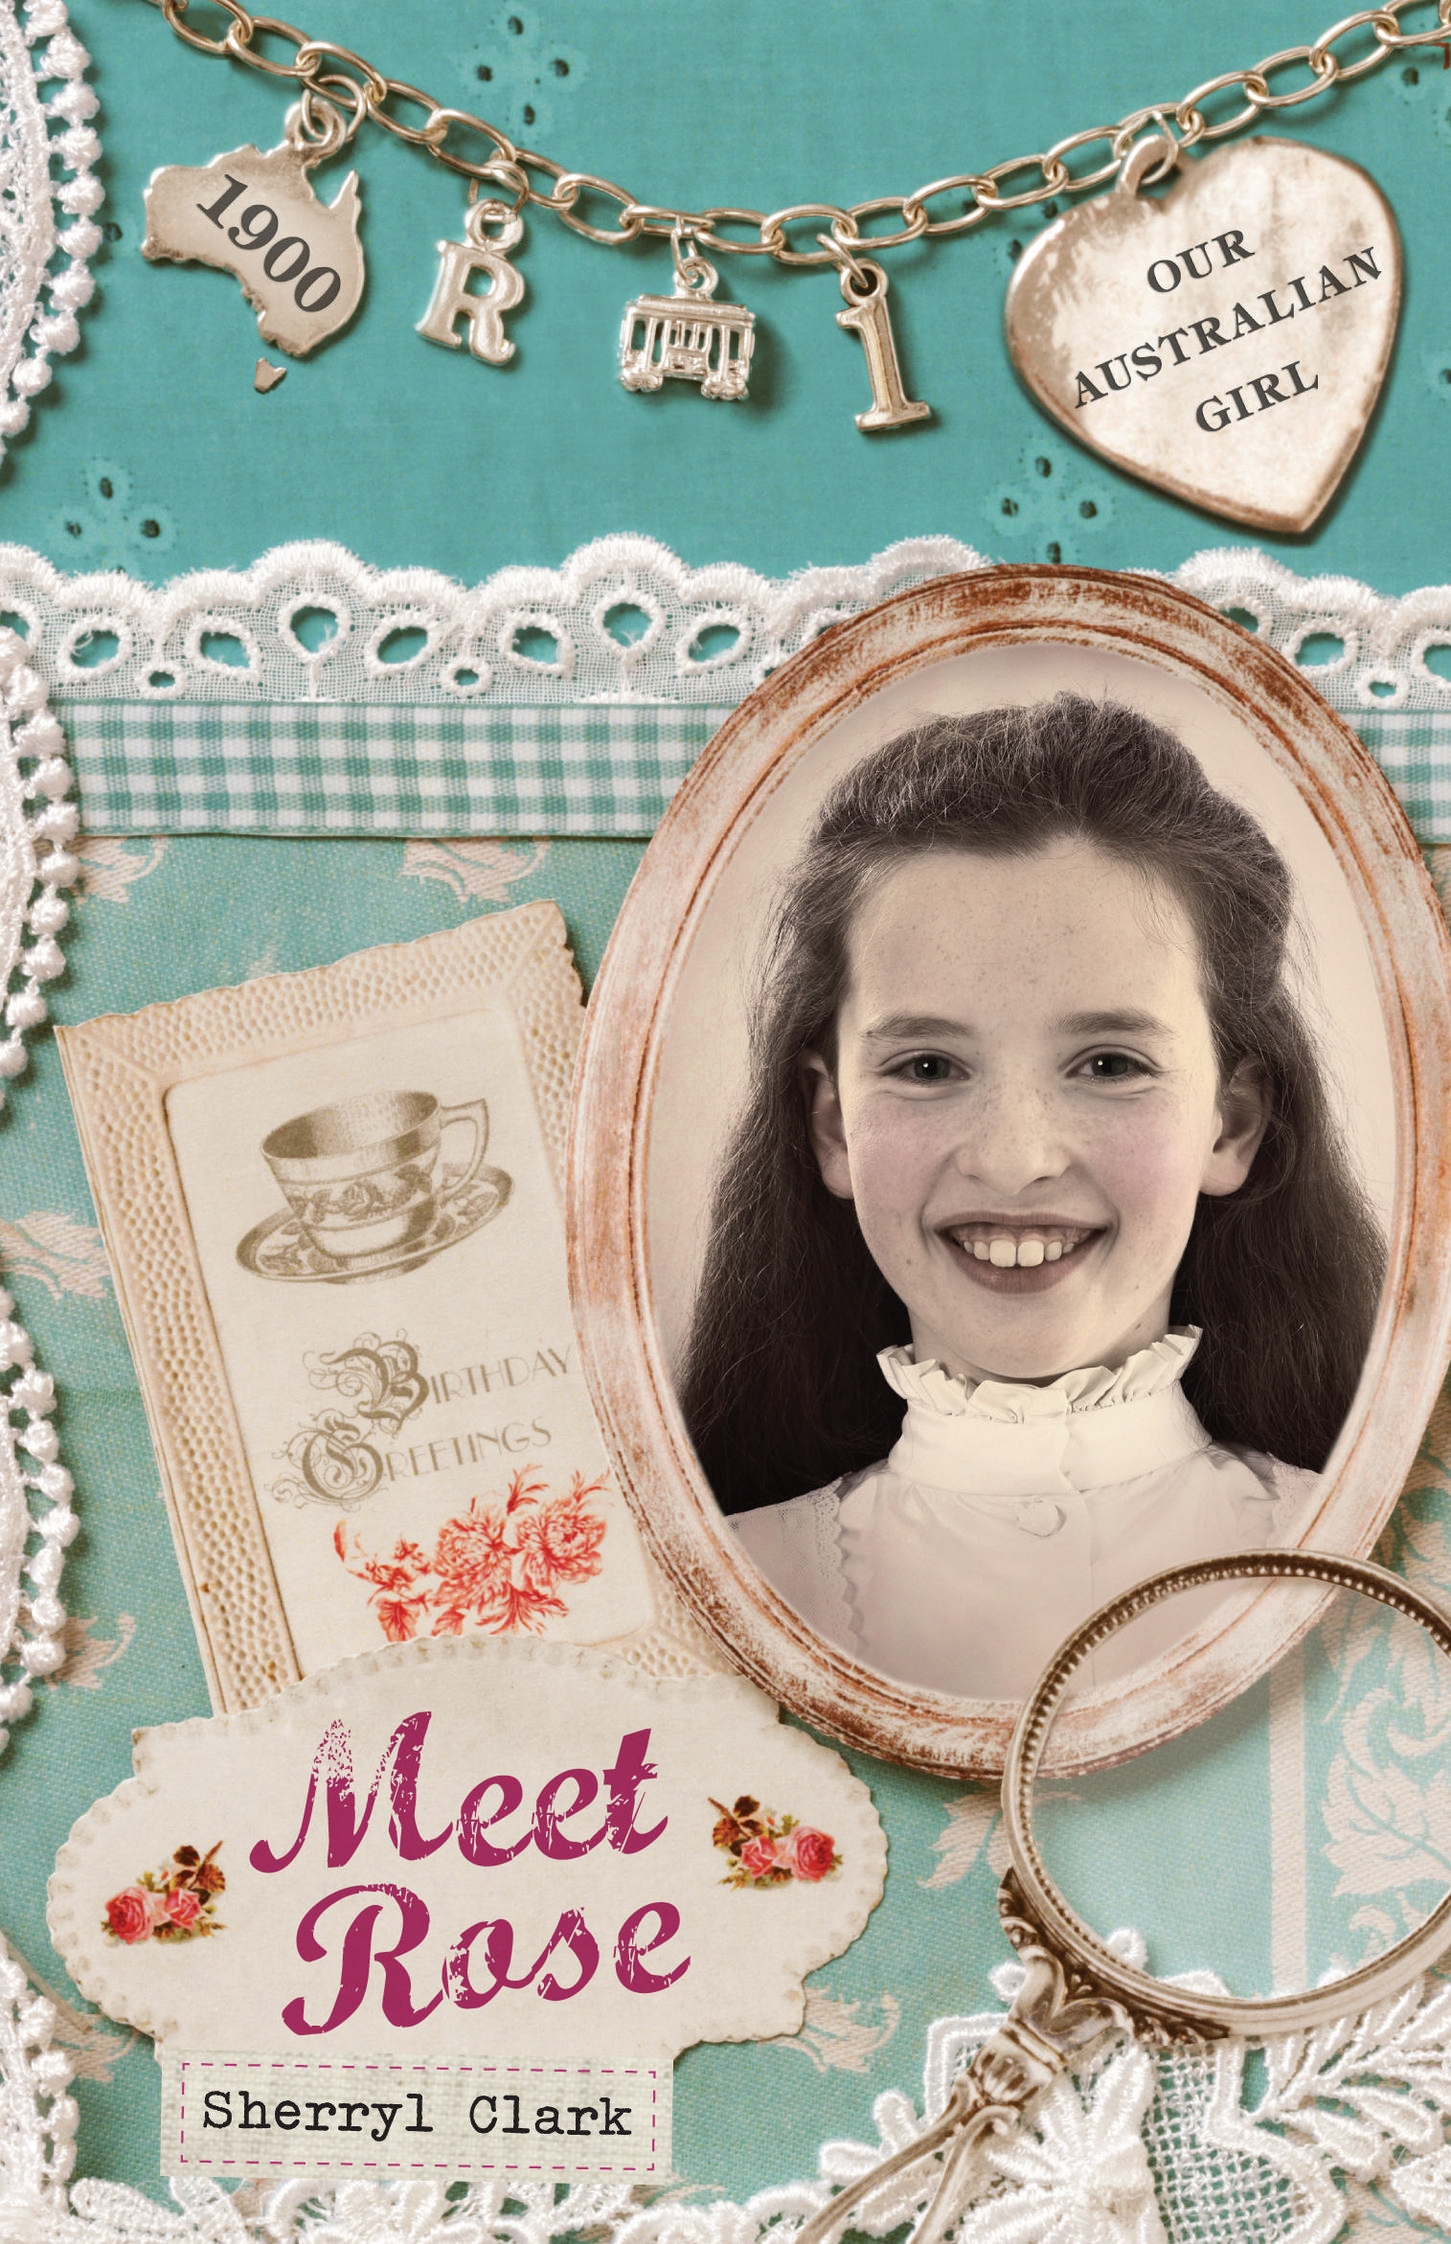 Book Cover:  Our Australian Girl: Meet Rose (Book 1)